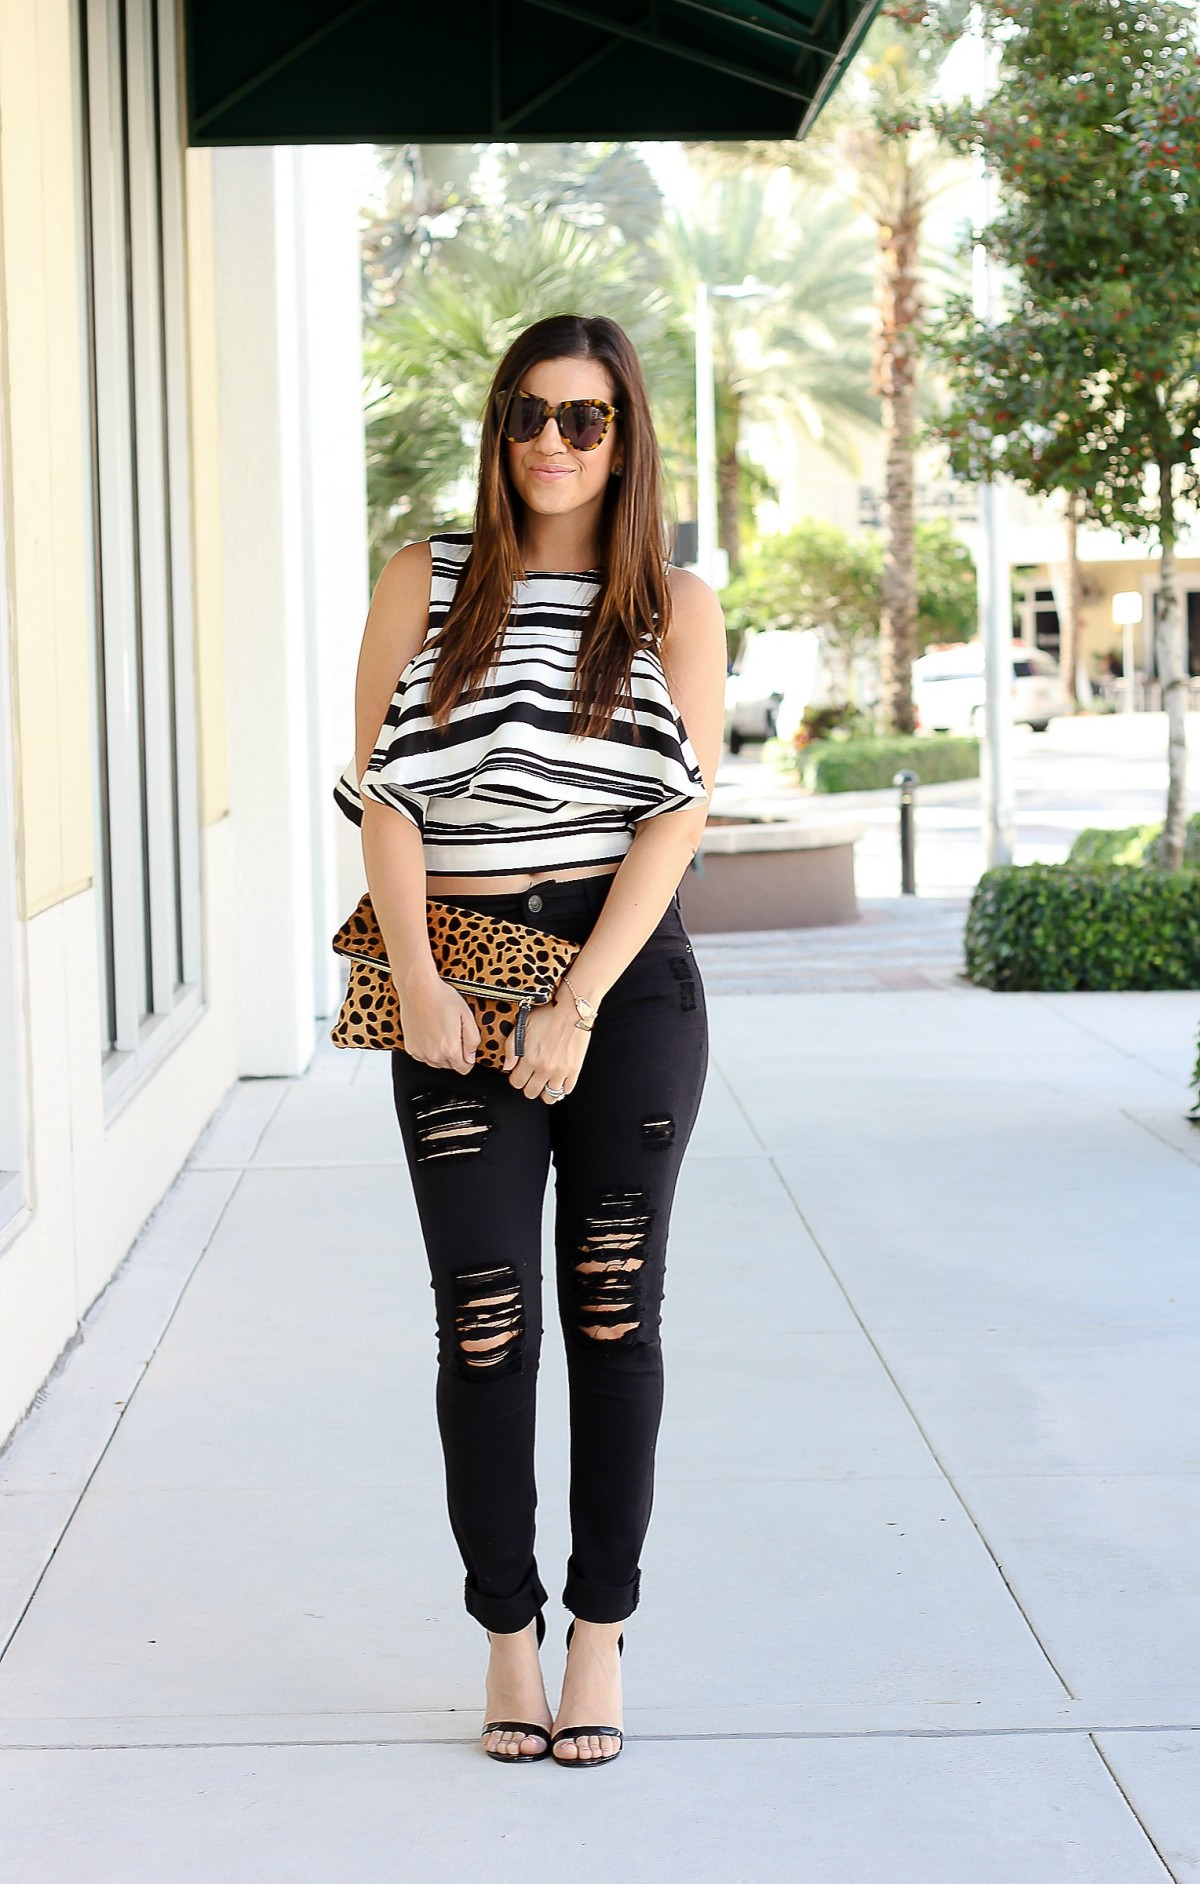 J.O.A. ruffled top, J.O.A. back white stripe top, Jaime Cittadino, Miami Fashion Blogger